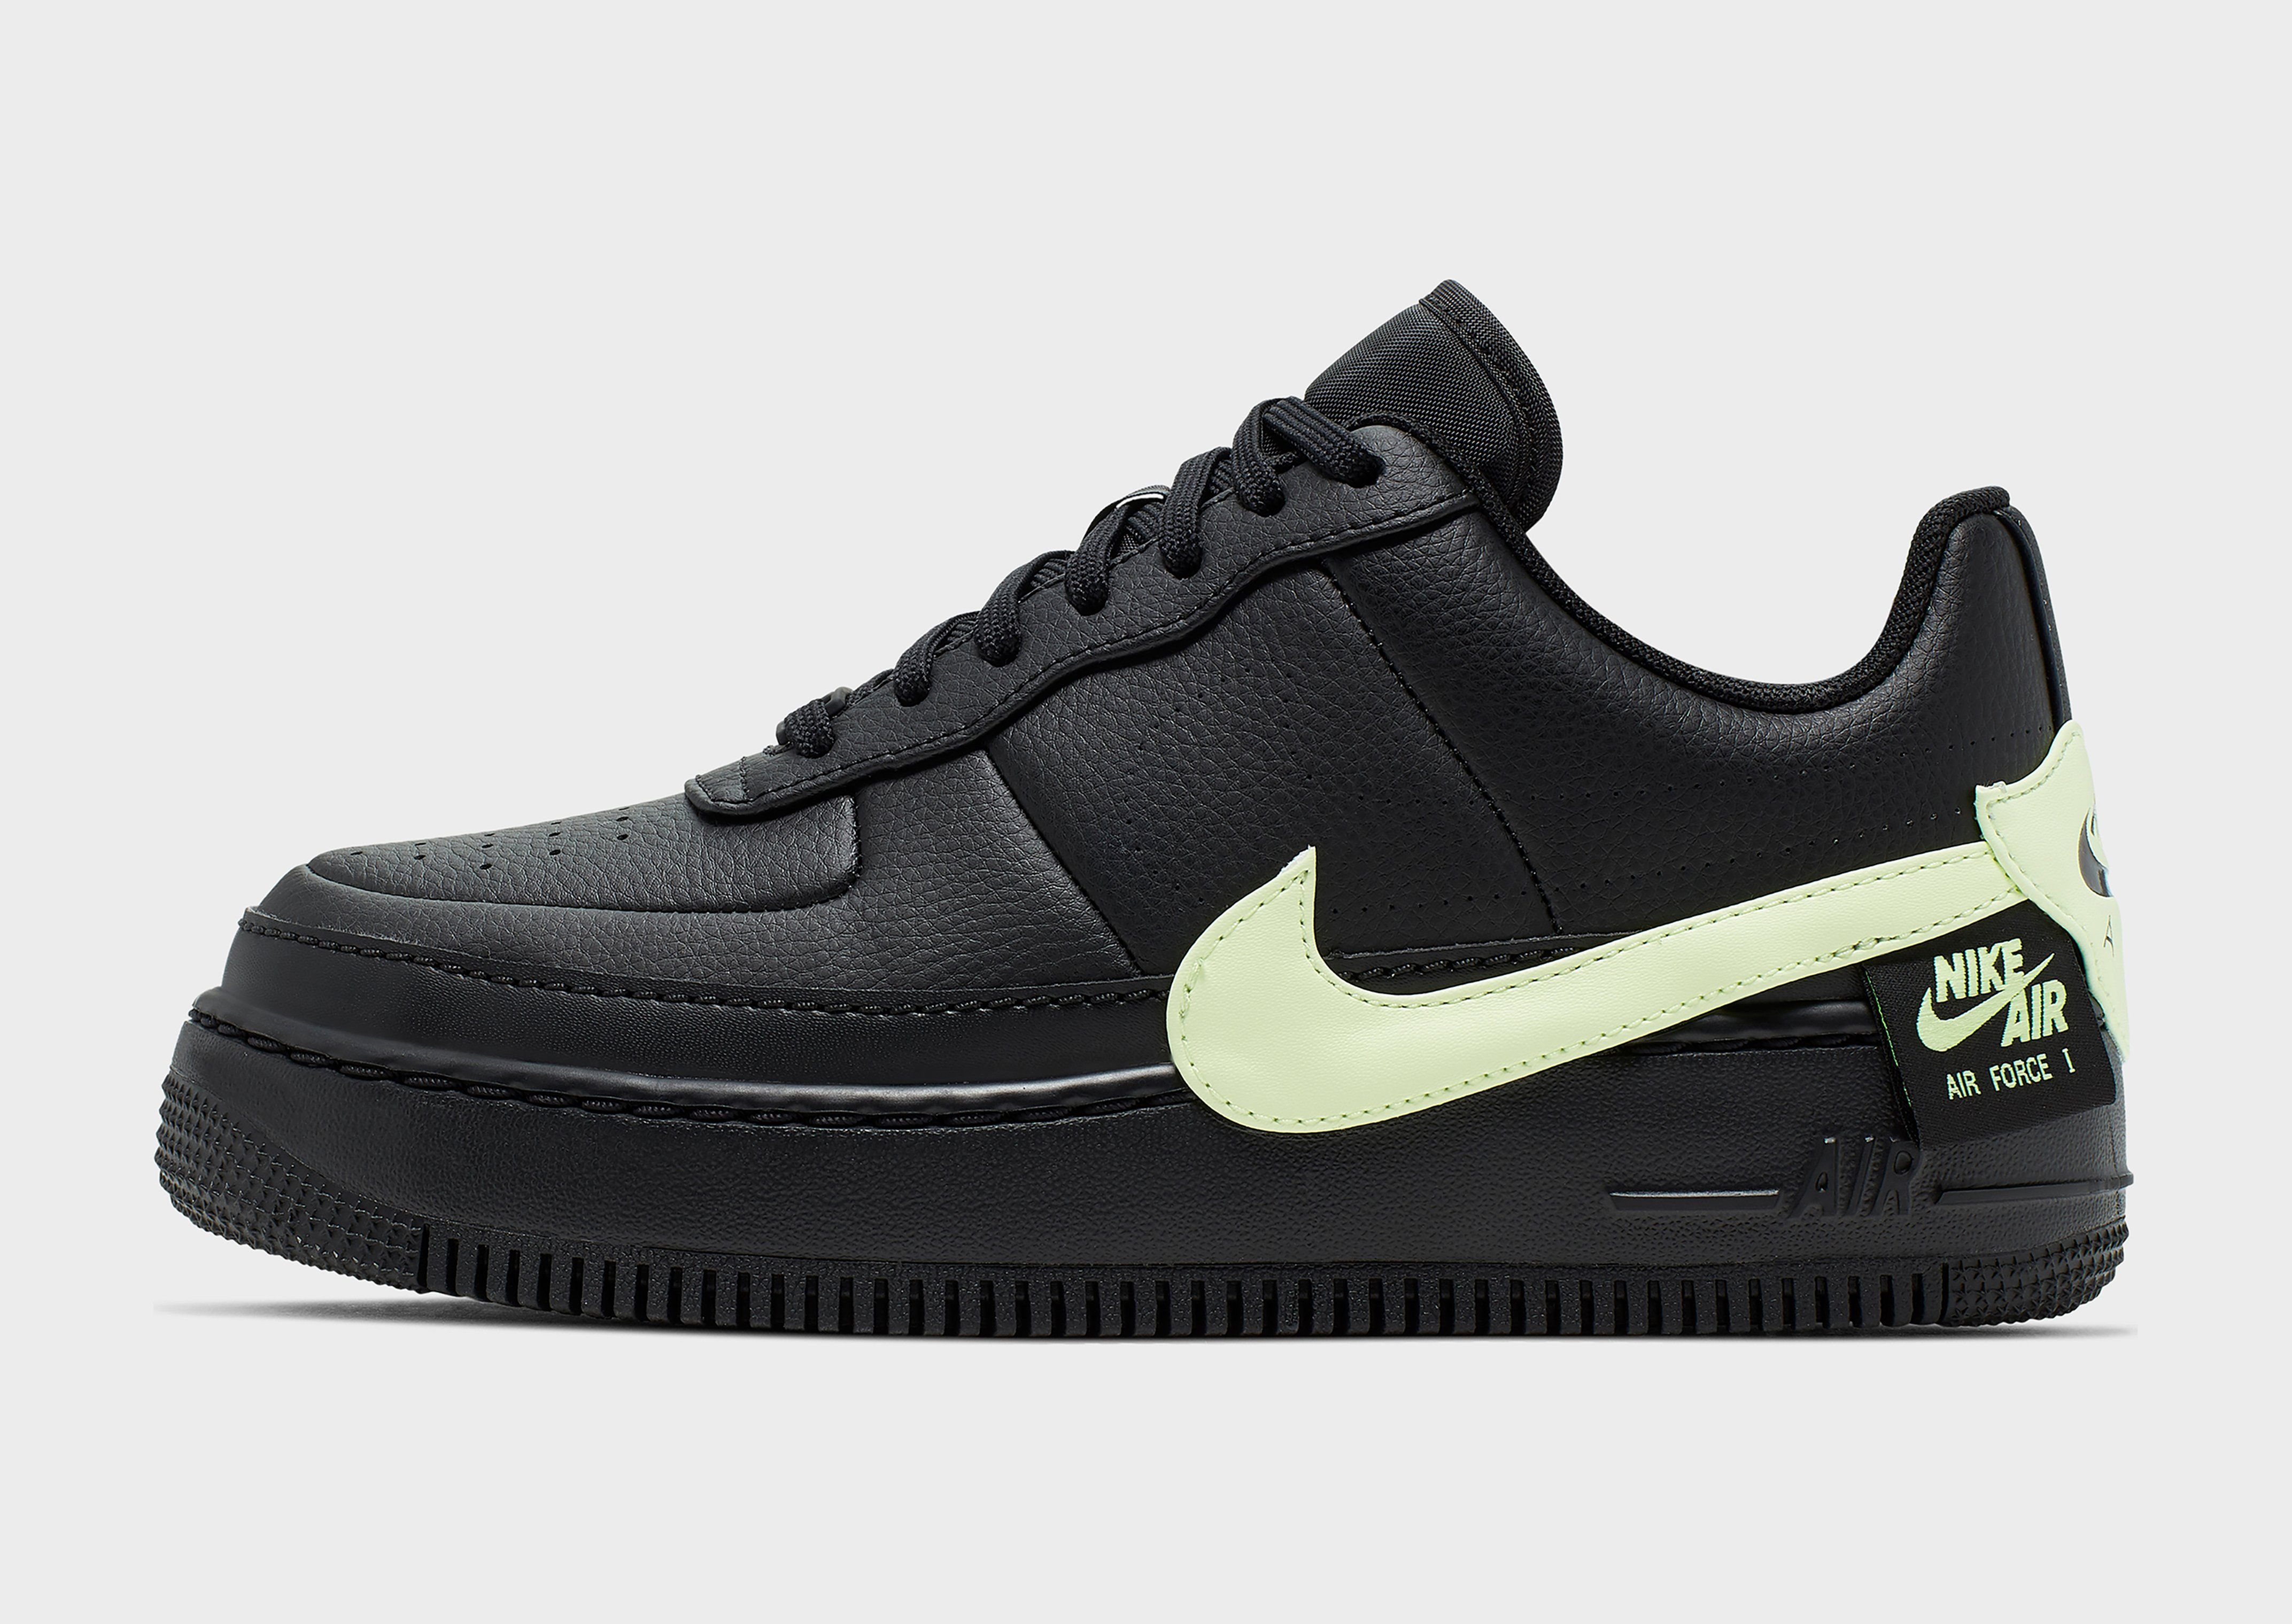 wholesale dealer 87da5 080b6 Nike Air Force 1 Jester XX Women's Shoe | JD Sports